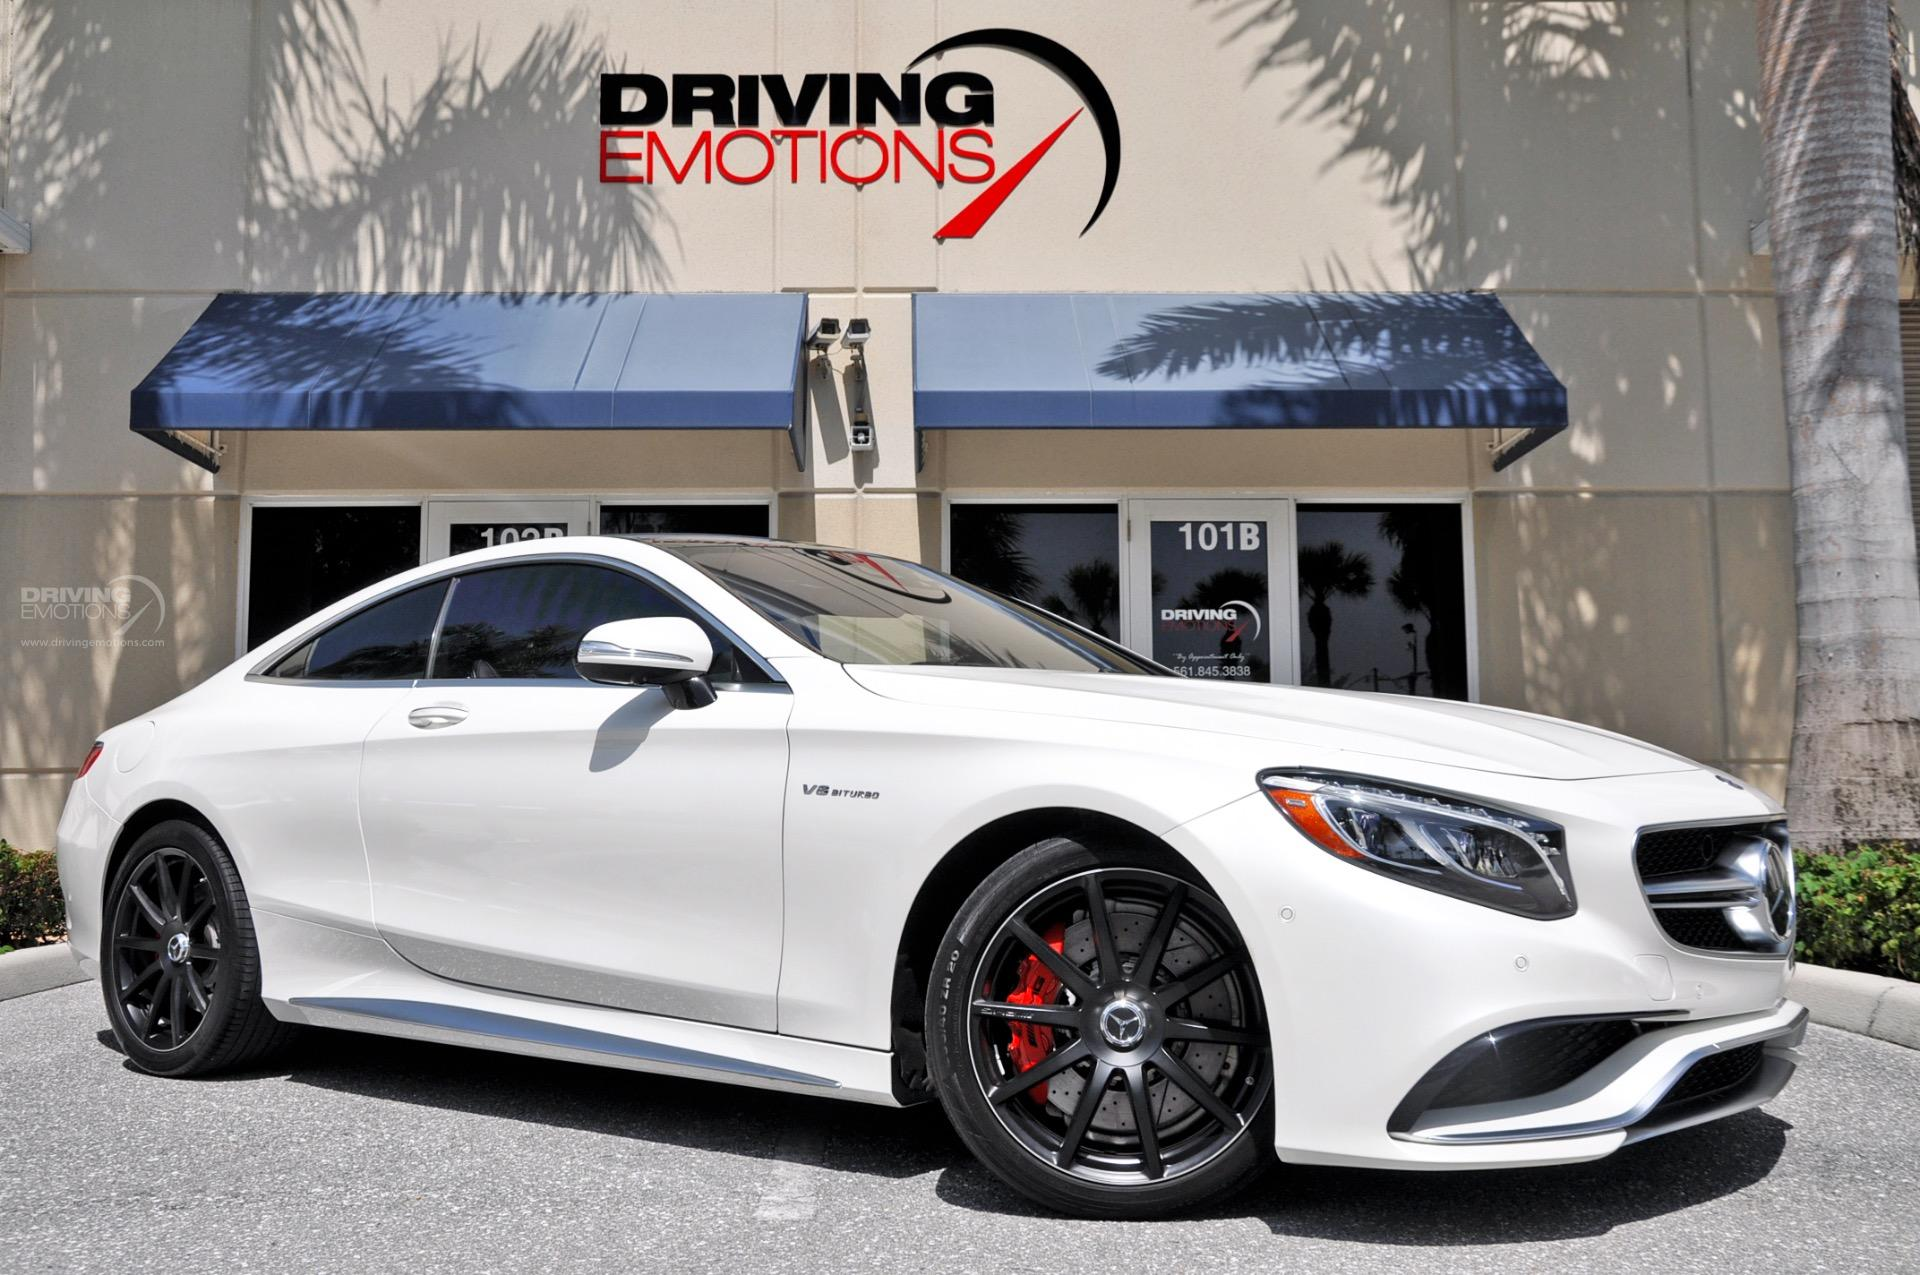 2015 mercedes benz s63 amg 4matic coupe s63 amg stock 5893 for sale near lake park fl fl. Black Bedroom Furniture Sets. Home Design Ideas